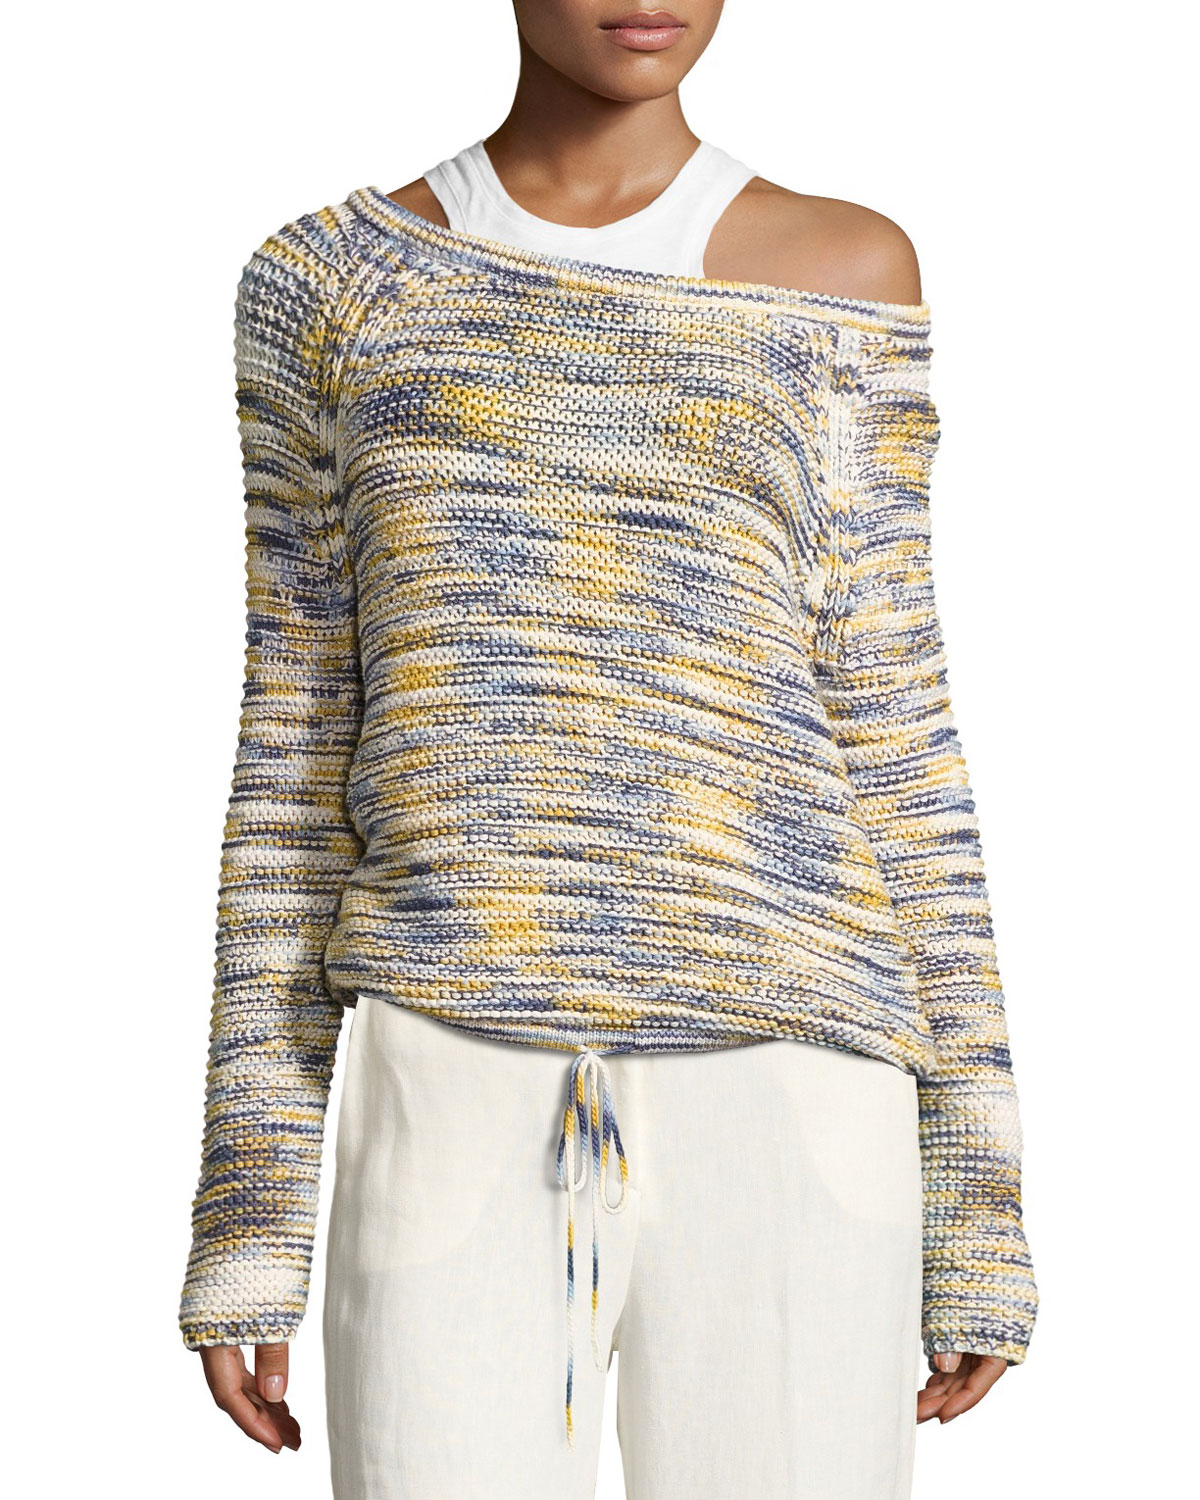 Coella Soft Chain Sweater, Multicolor